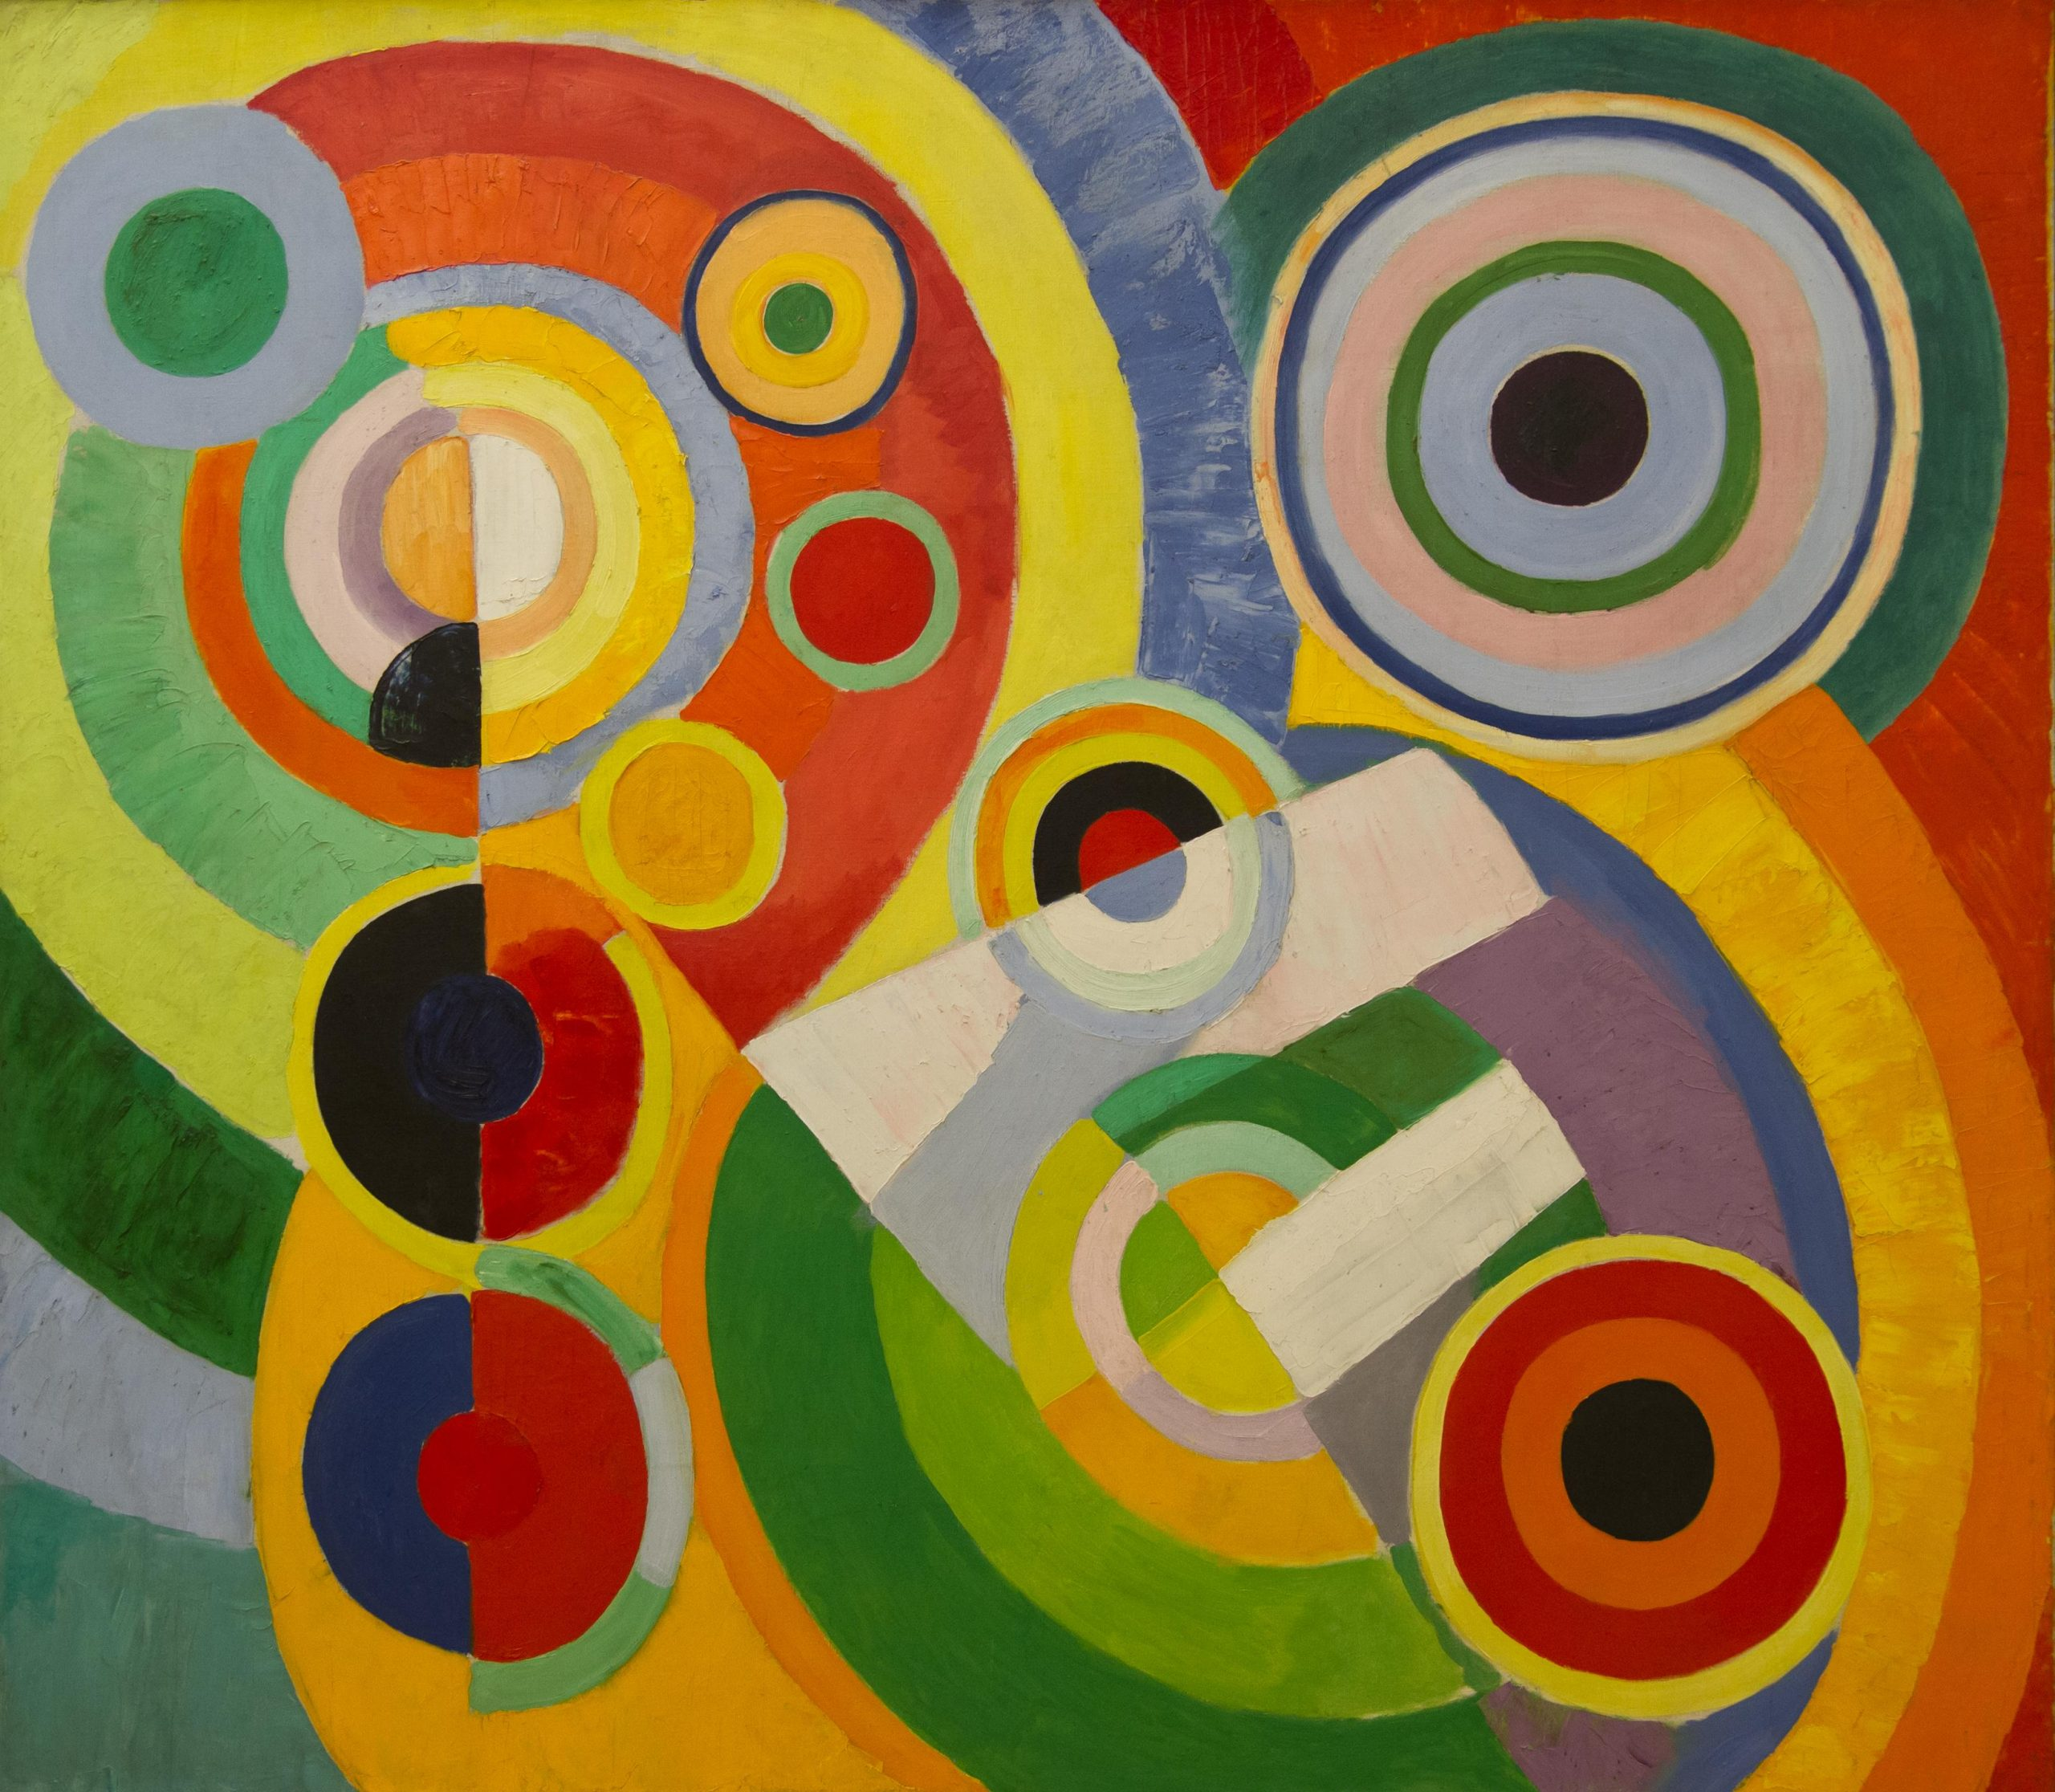 Rythme, Joie De Vivre is an abstract painting that represents the artist's pictorial language that conveys shadings through concurrent differentiation.